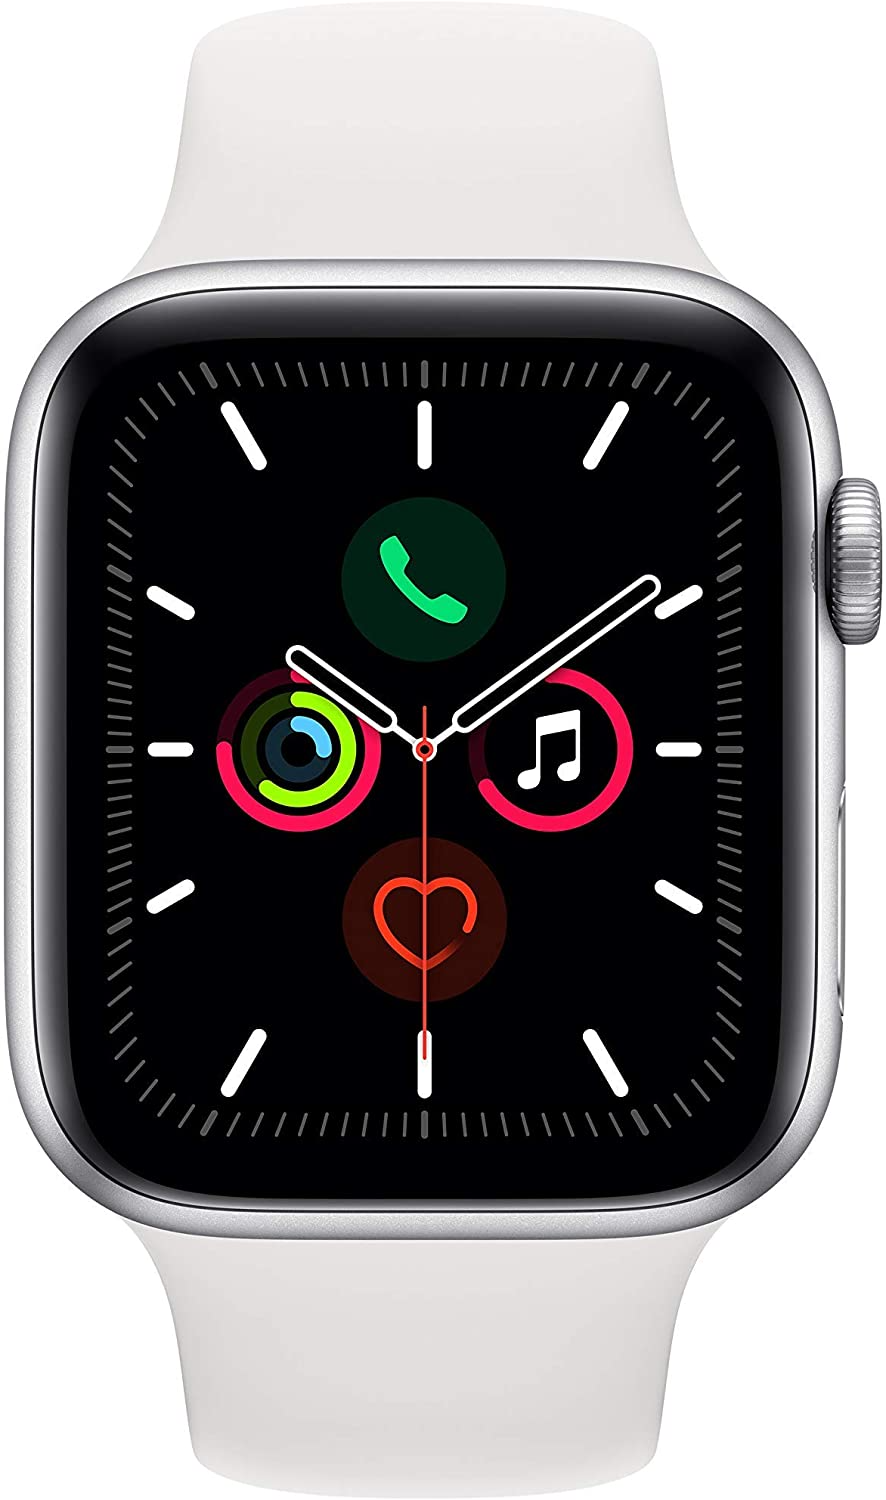 Amazon Com Apple Watch Series 5 Gps 44mm Space Gray Aluminum Case With Black Sport Band Renewed Apple Watch Series Apple Watch Buy Apple Watch